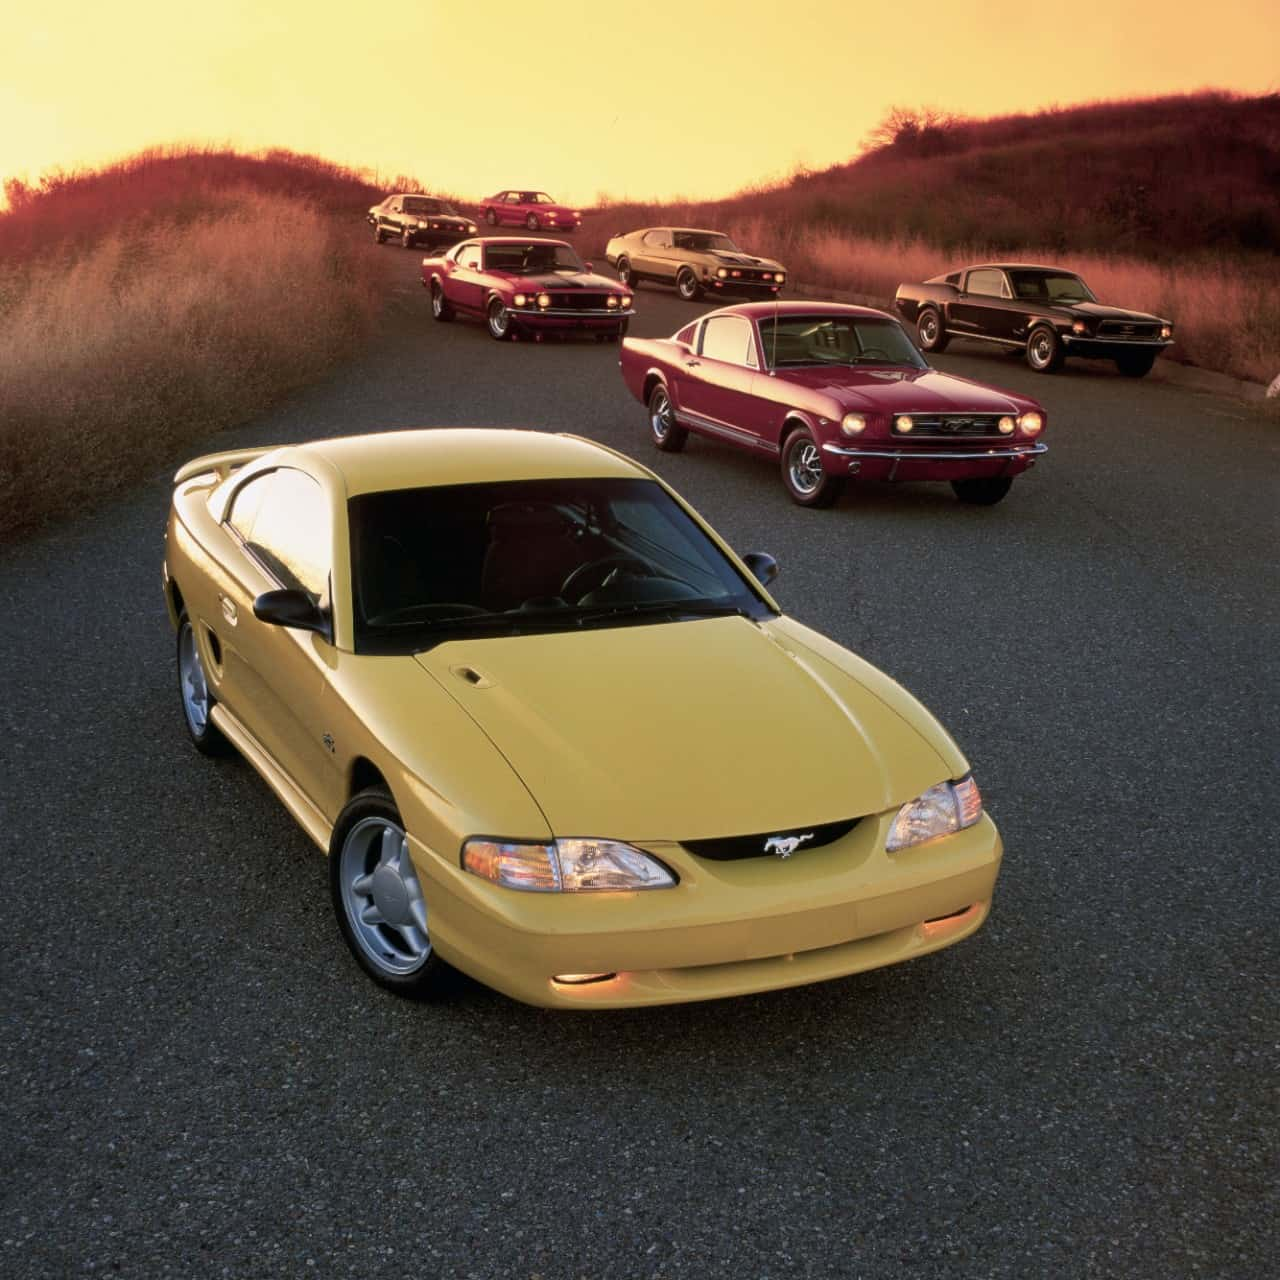 1994 Ford Mustang Coupe at sunset with every previous generation Mustang in the background